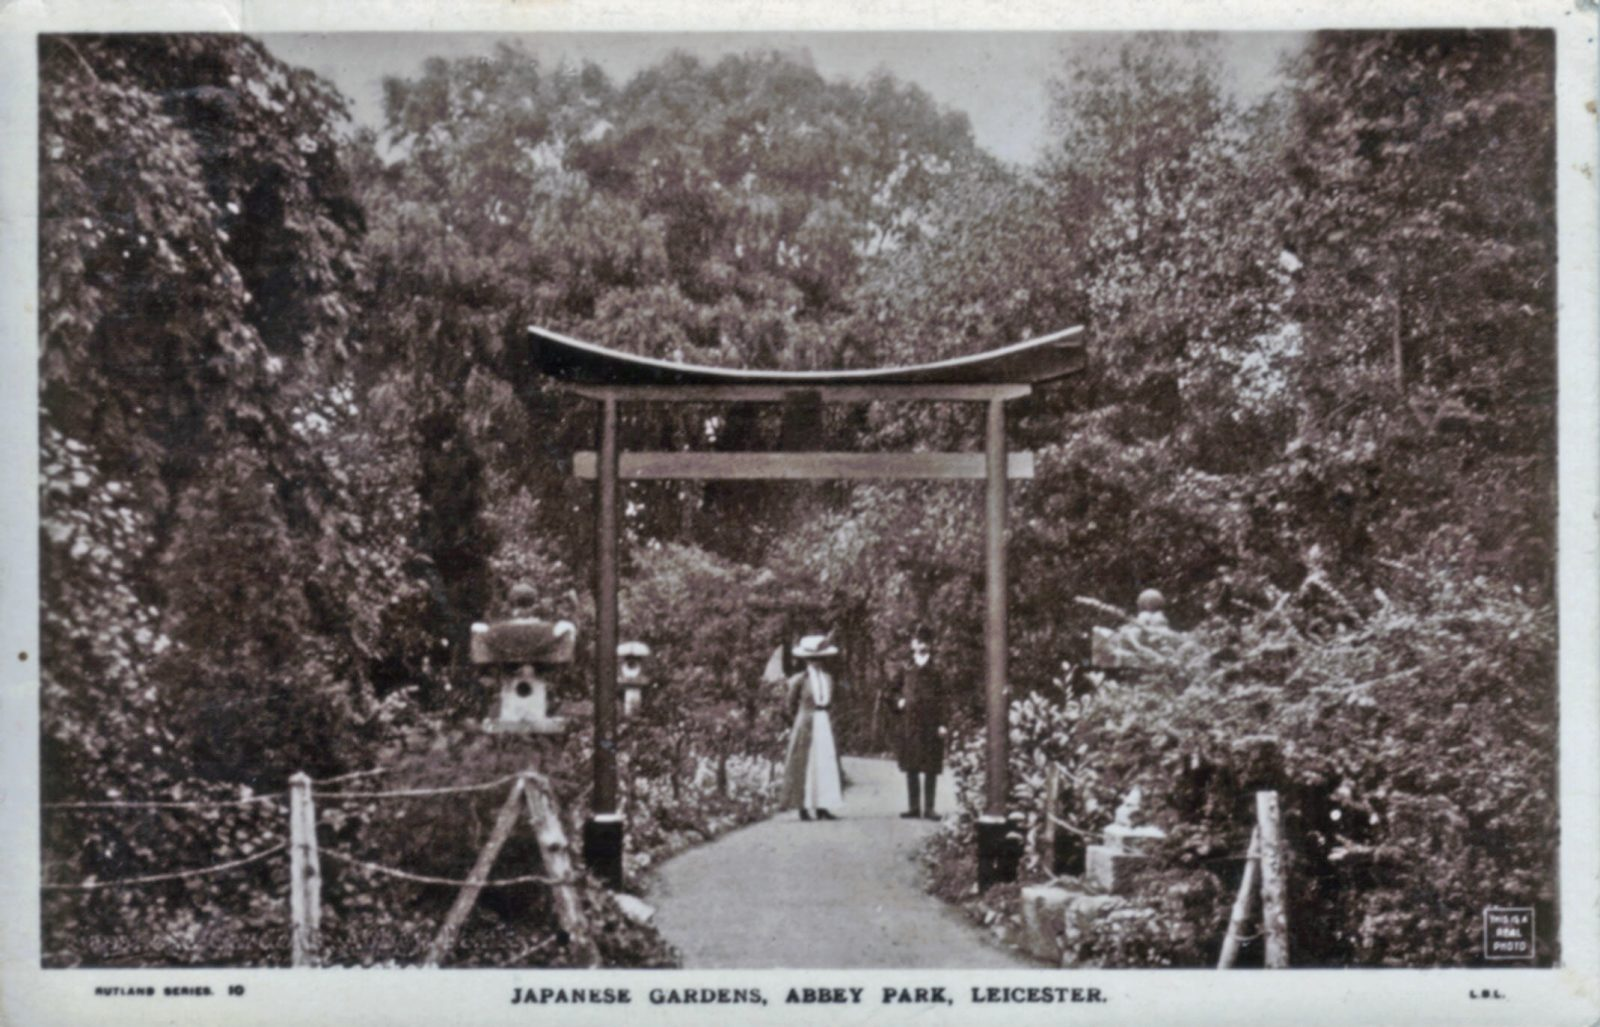 Abbey Park, Leicester. 1901-1920: The Japanese gardens entrance with two people (File:1429)